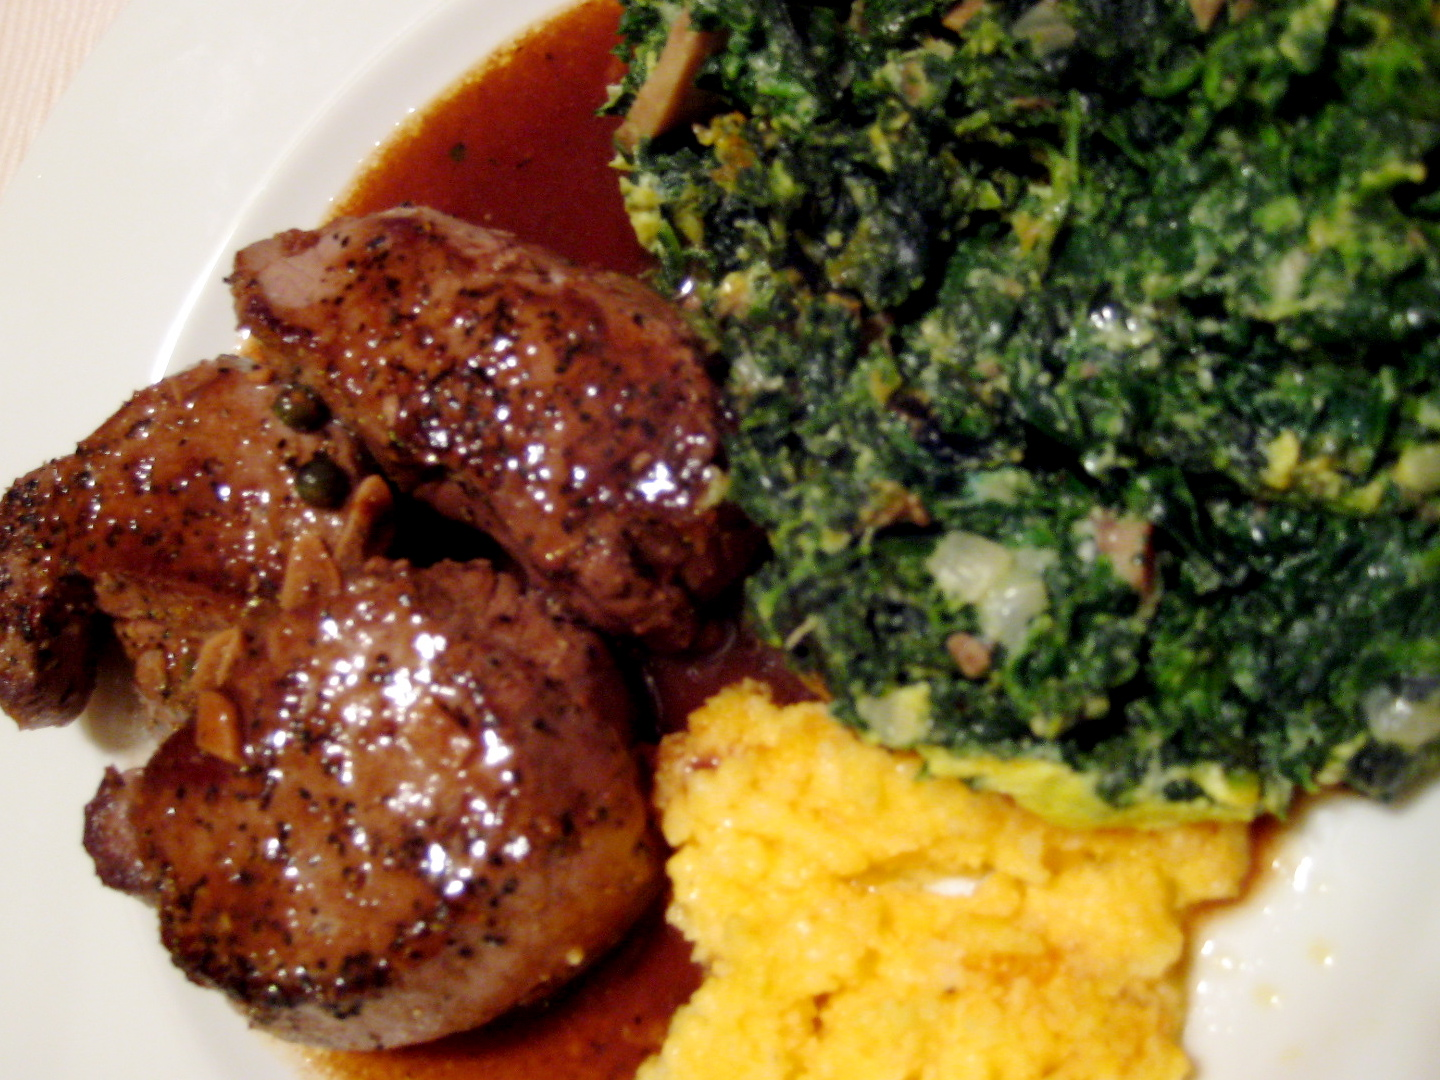 ... food & hospitality: venison tenderloin with whiskey and wine sauce